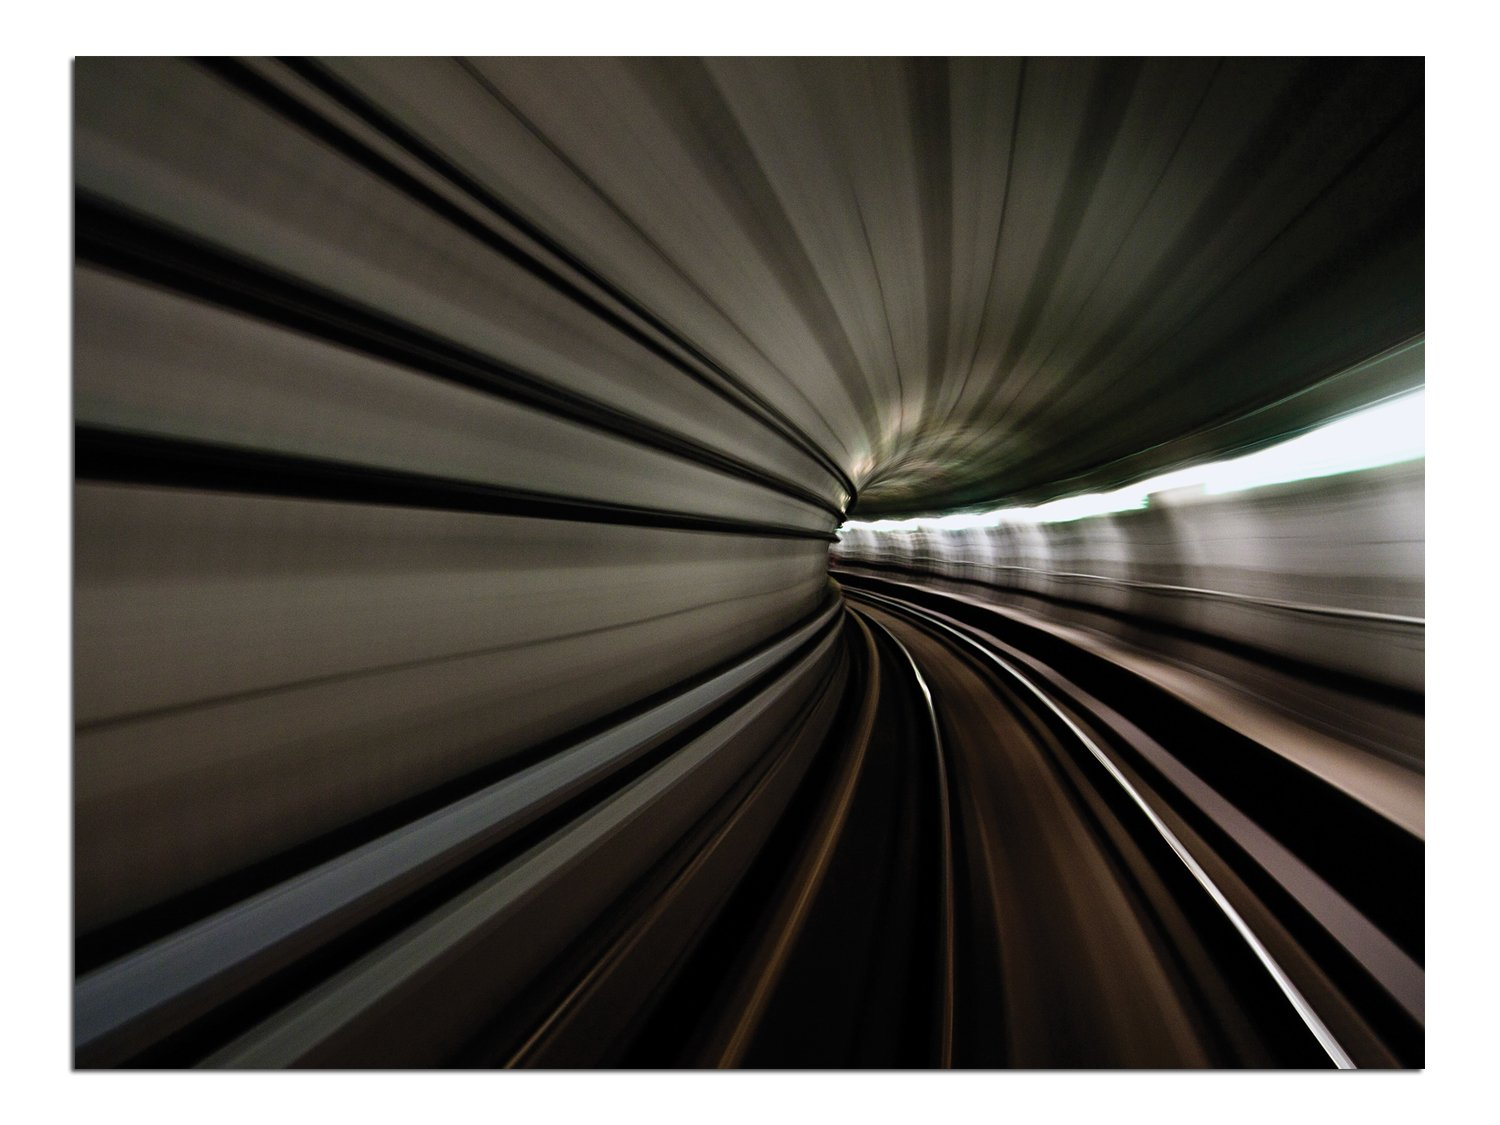 JP London Solvent Free Print PAPL1X39768 Worm Hole Subway Vortex Space Light Ready to Frame Poster Wall Art 40 h by 30 w